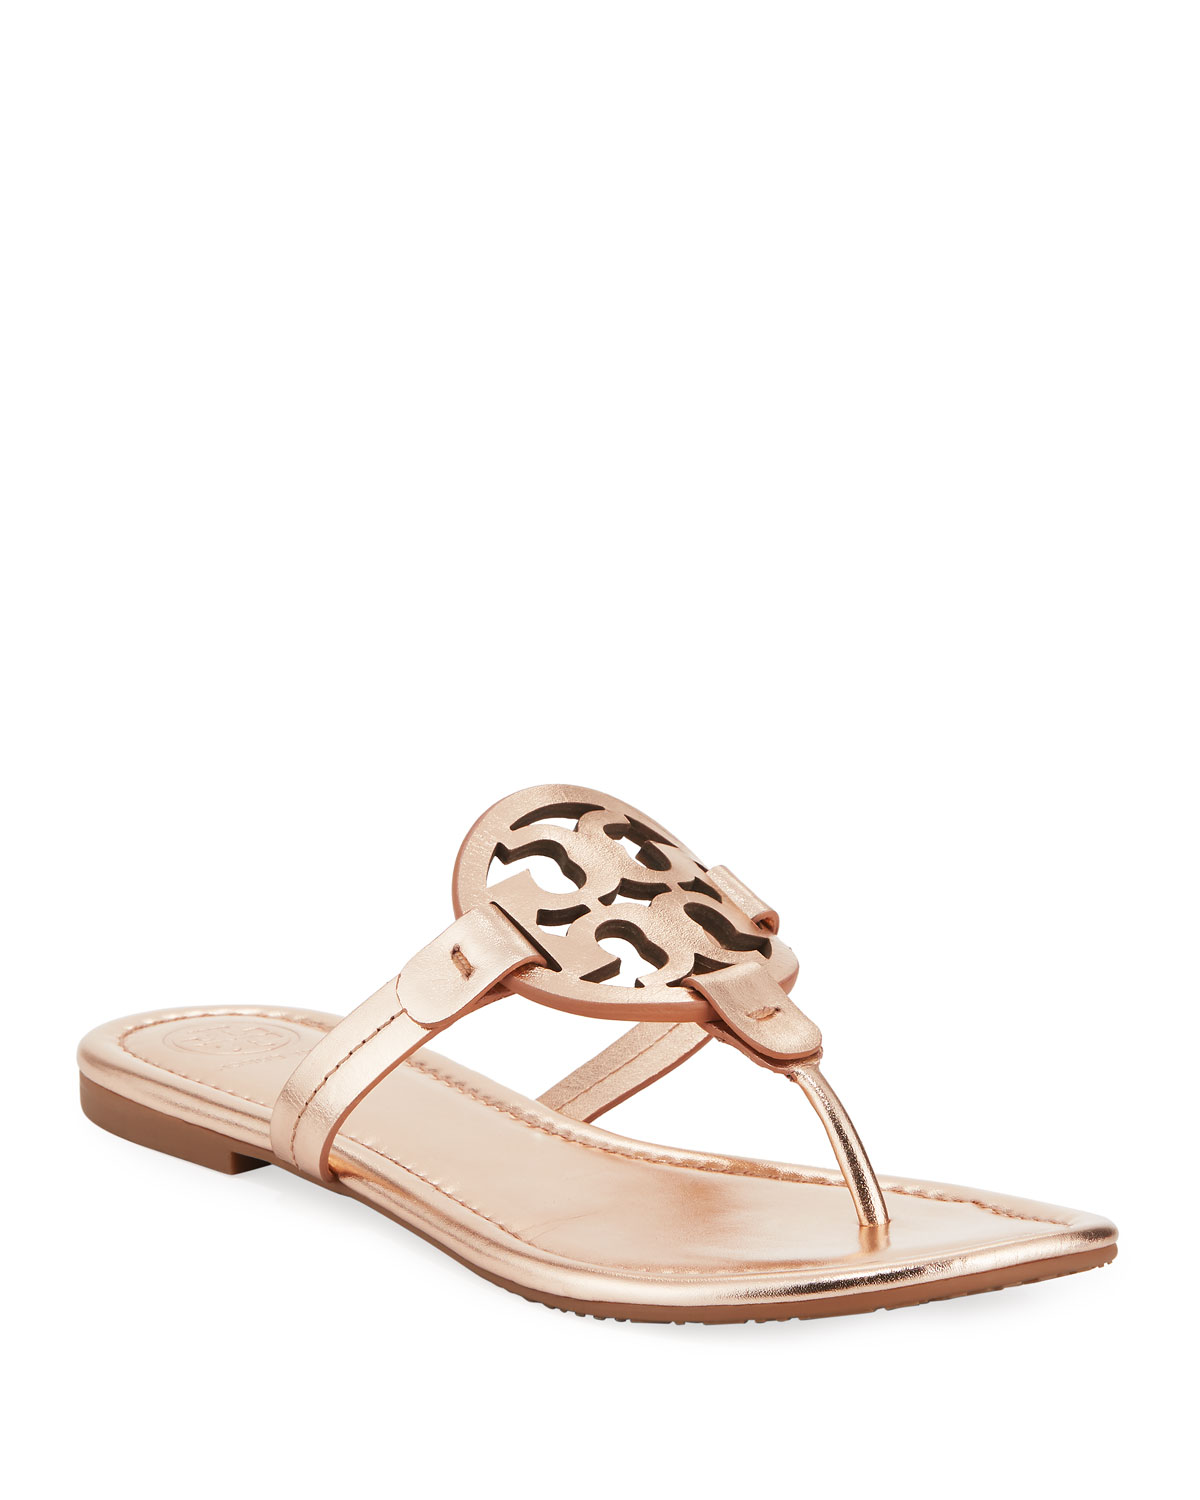 5f1835030 Tory Burch Miller Medallion Metallic Leather Flat Slide Sandal ...